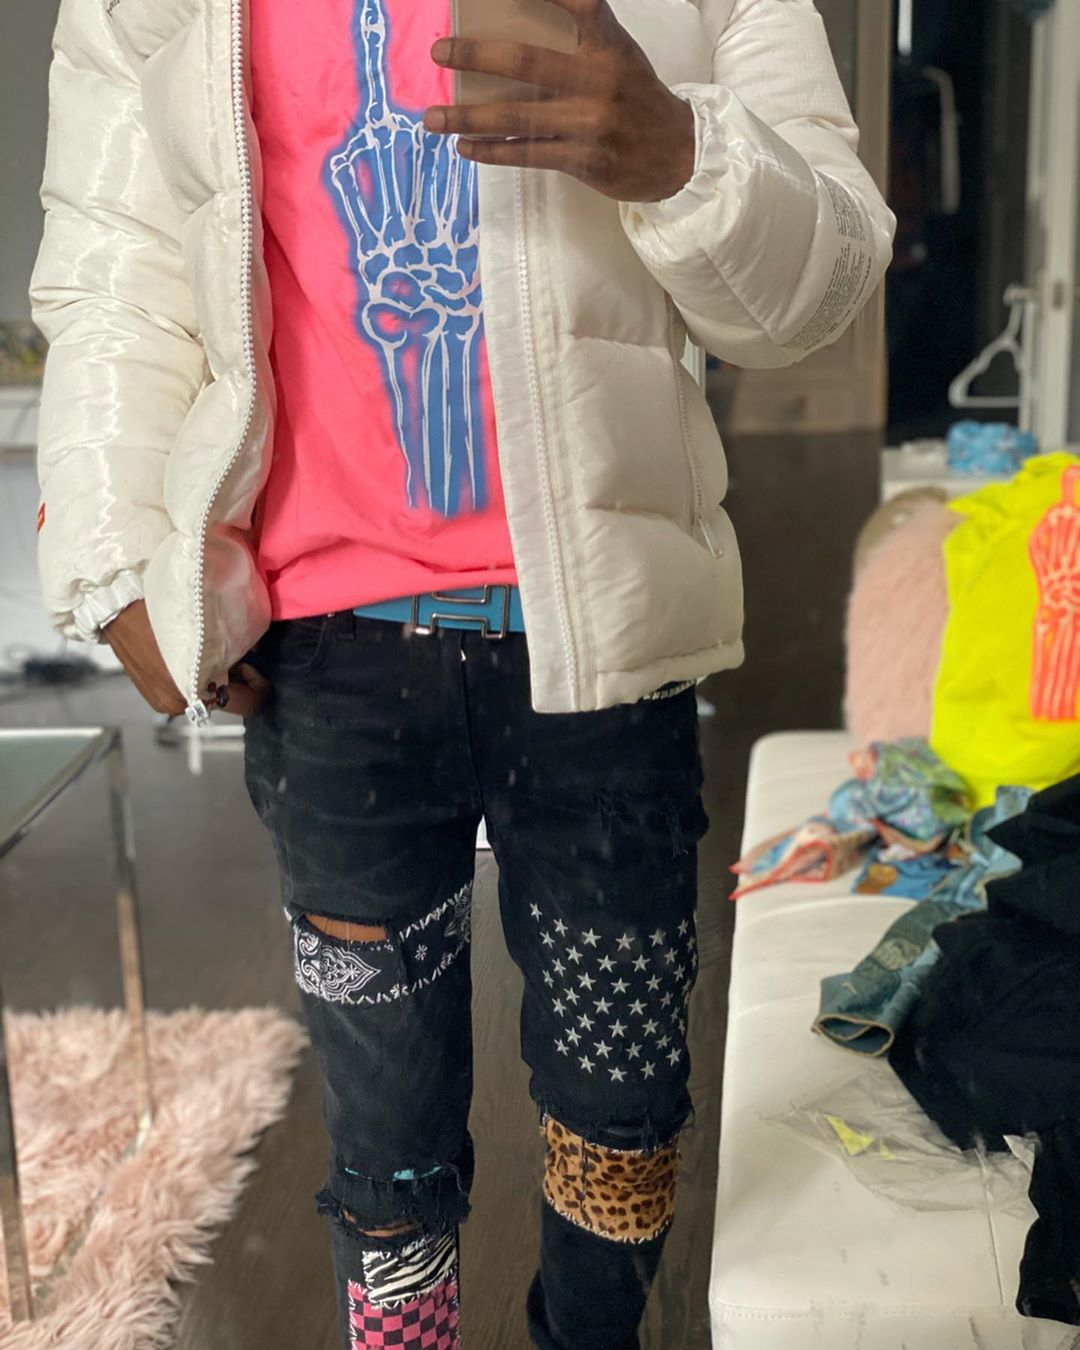 A Boogie Shows Off His Heron Preston Amiri Dior And Hermes Fit